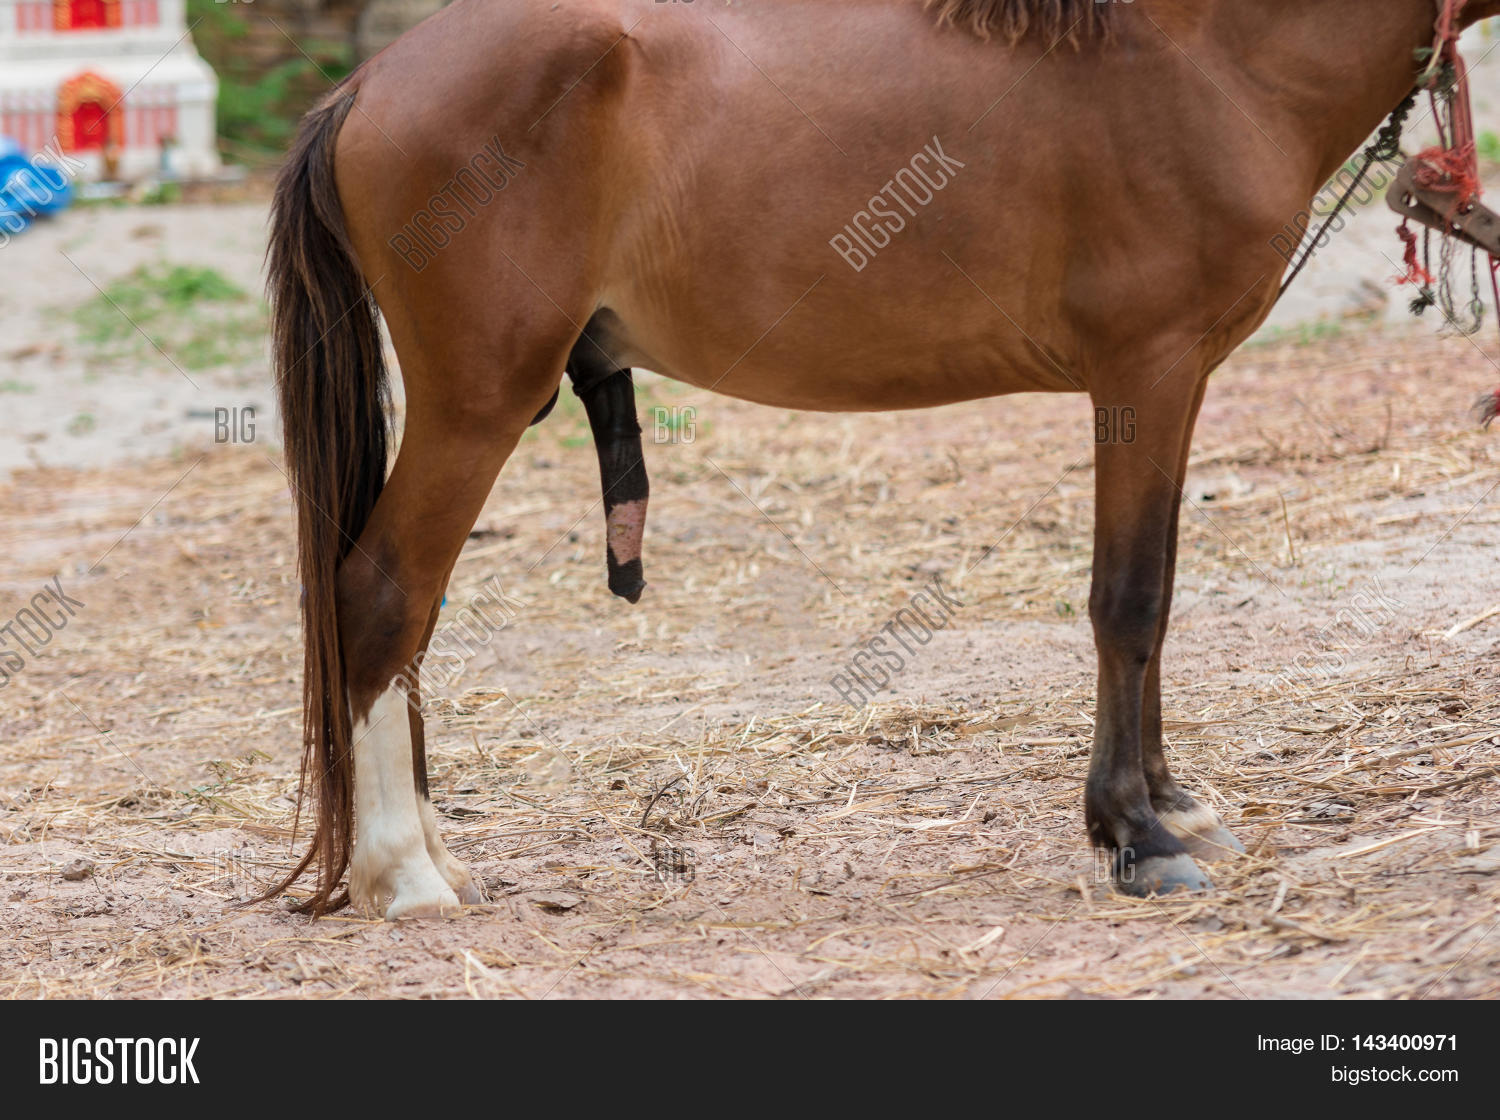 Penis Horse Image & Photo (Free Trial) | Bigstock